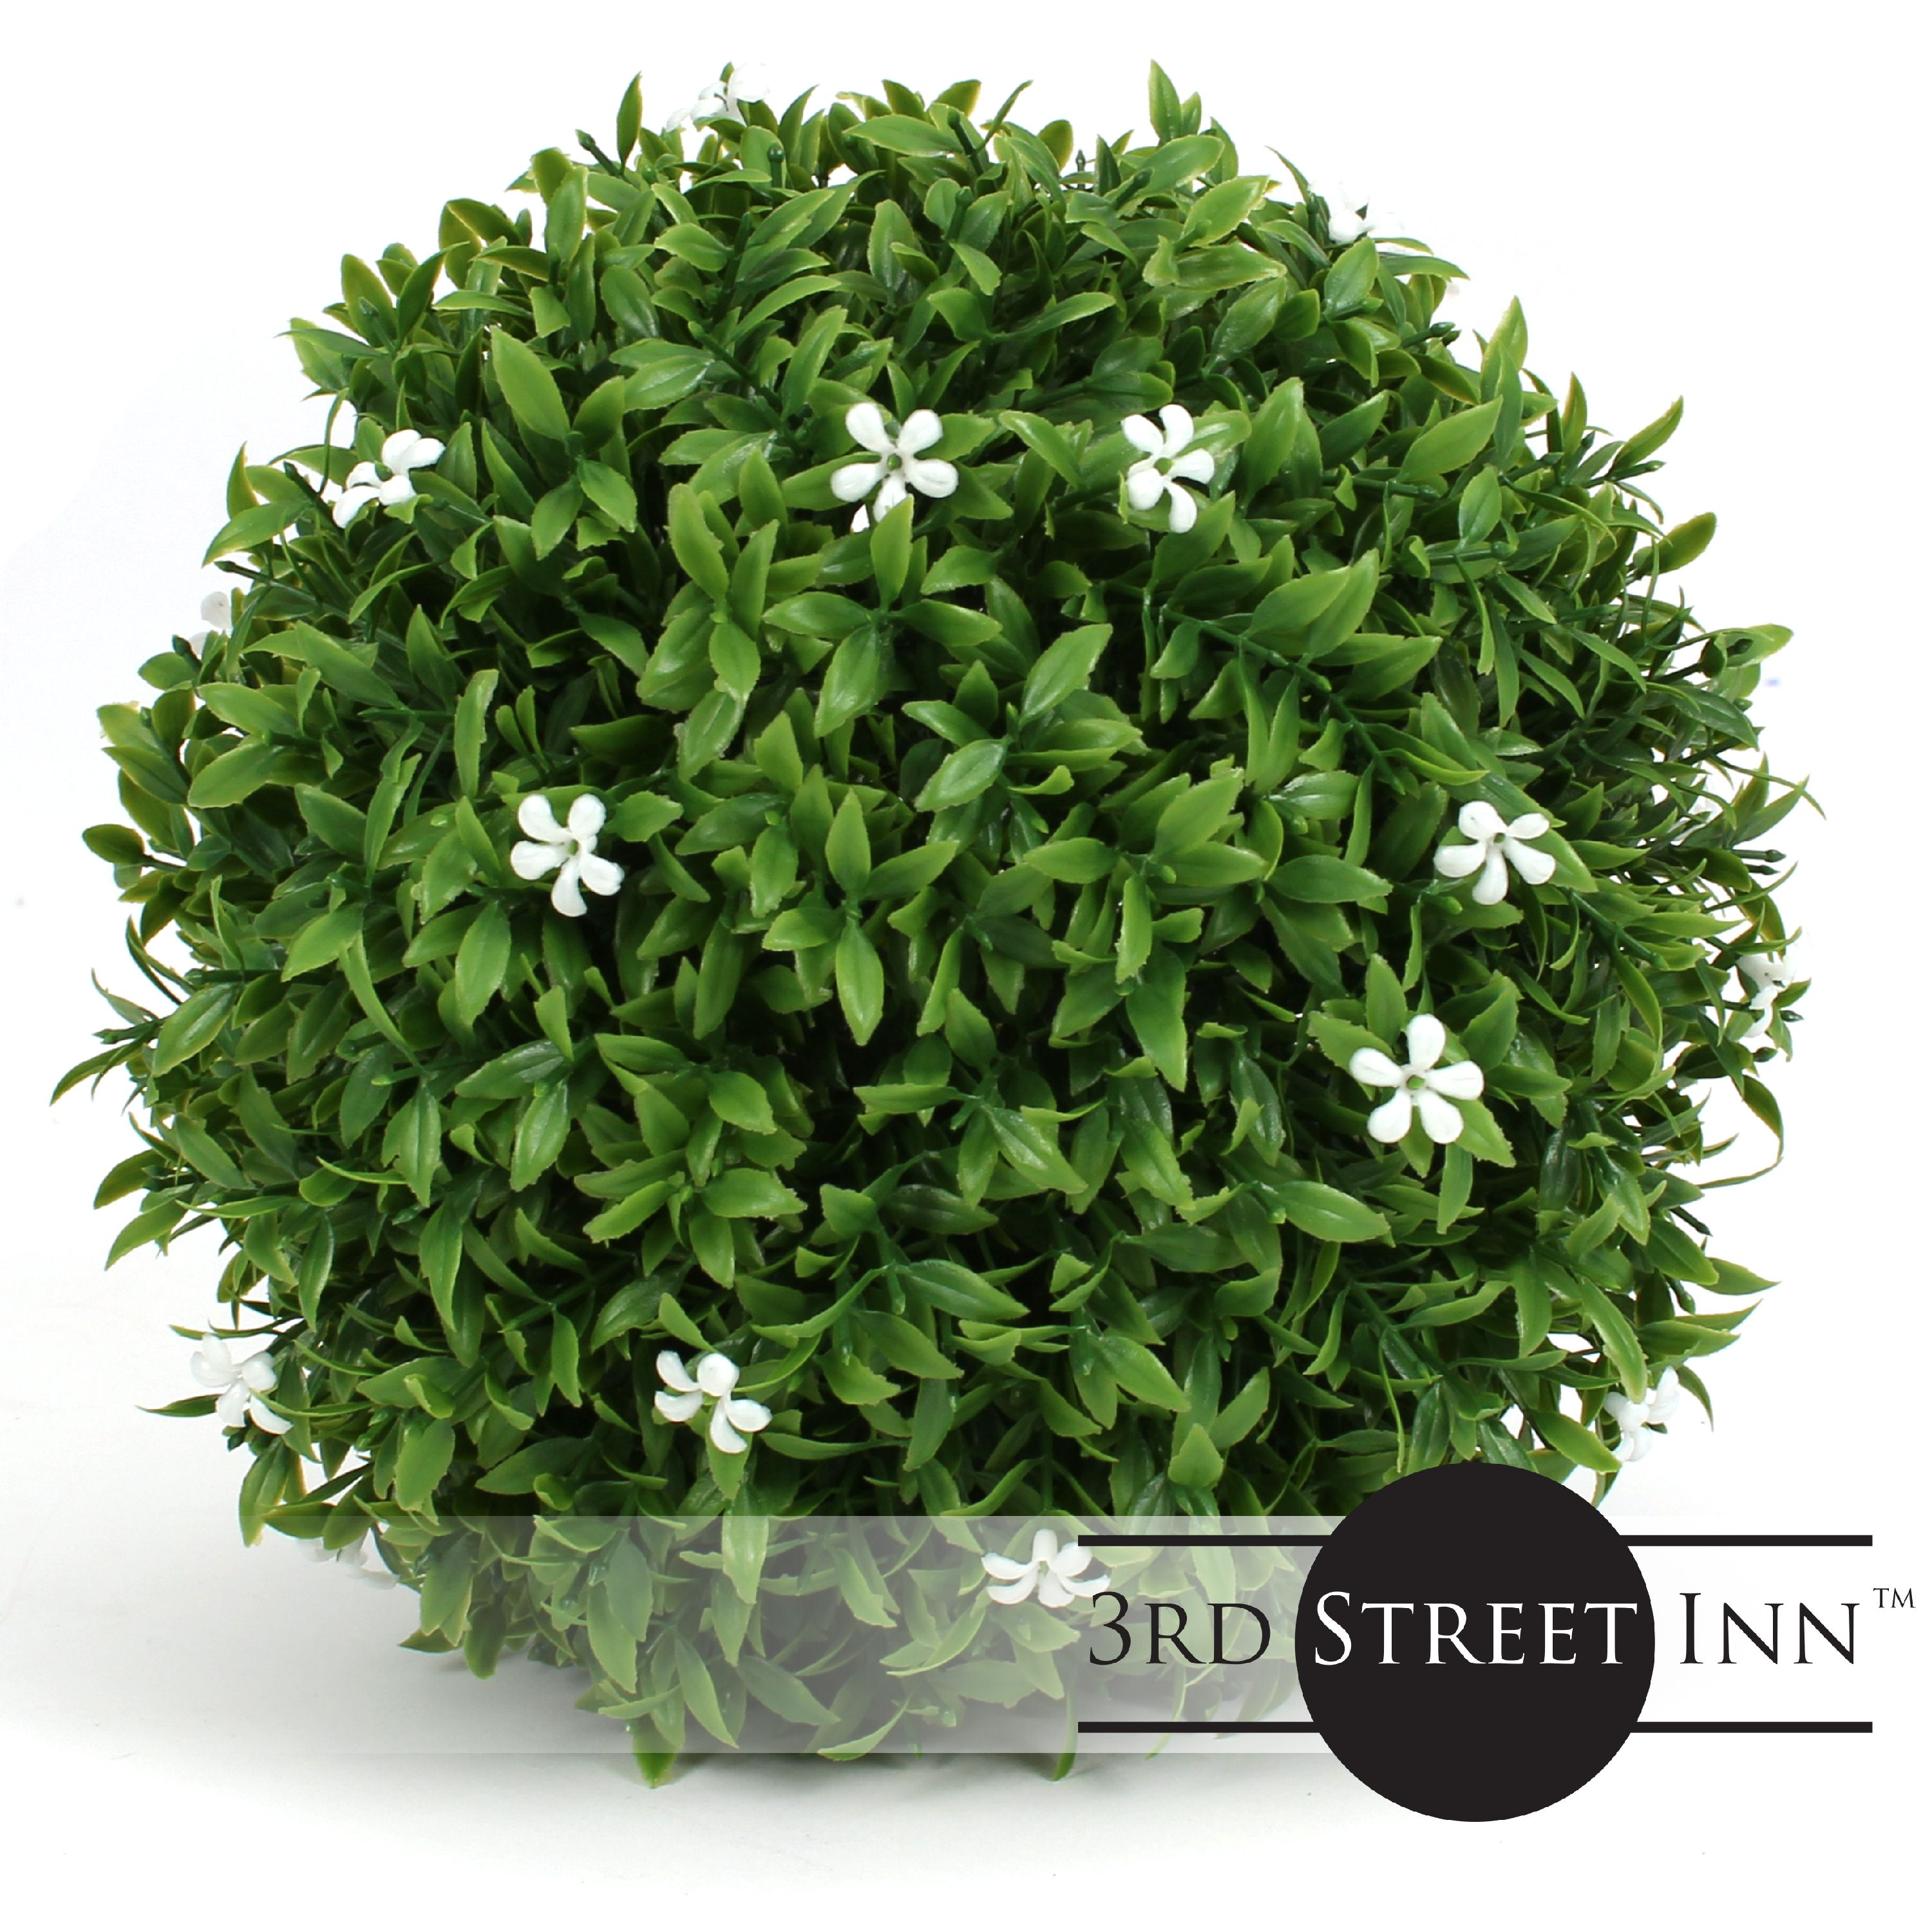 3rd Street Inn White Flower Topiary Ball 7 Artificial Topiary Plant Wedding Decor Indoor Outdoor Artificial Plant Ball Topiary Tree Substitute 2 White Flower Walmart Com Walmart Com